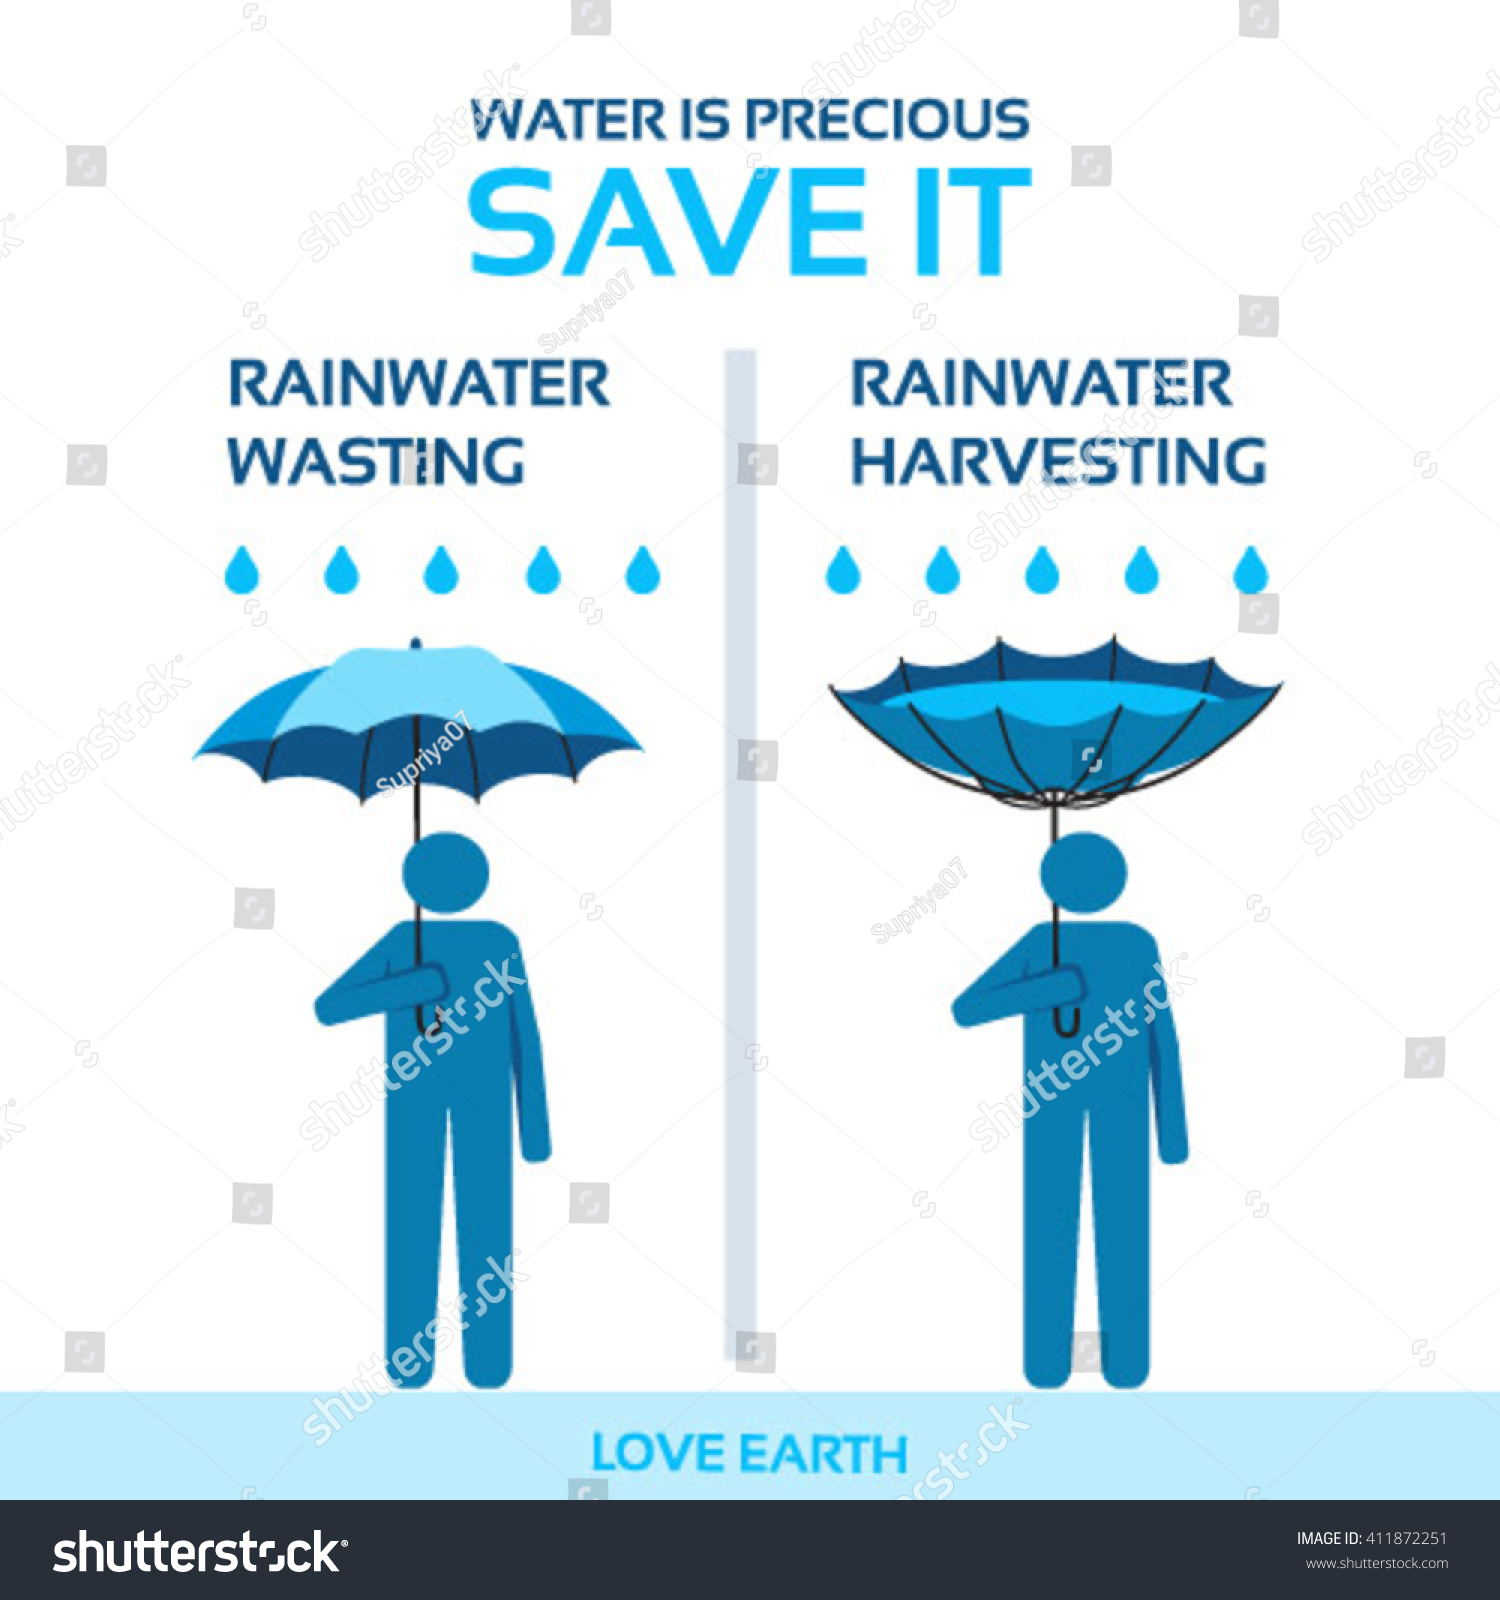 essay on rainwater harvesting for kids Rainwater harvesting refers to the trapping rain water harvesting: meaning, methods, advantages, and short paragraph on rainwater harvesting short essay on.